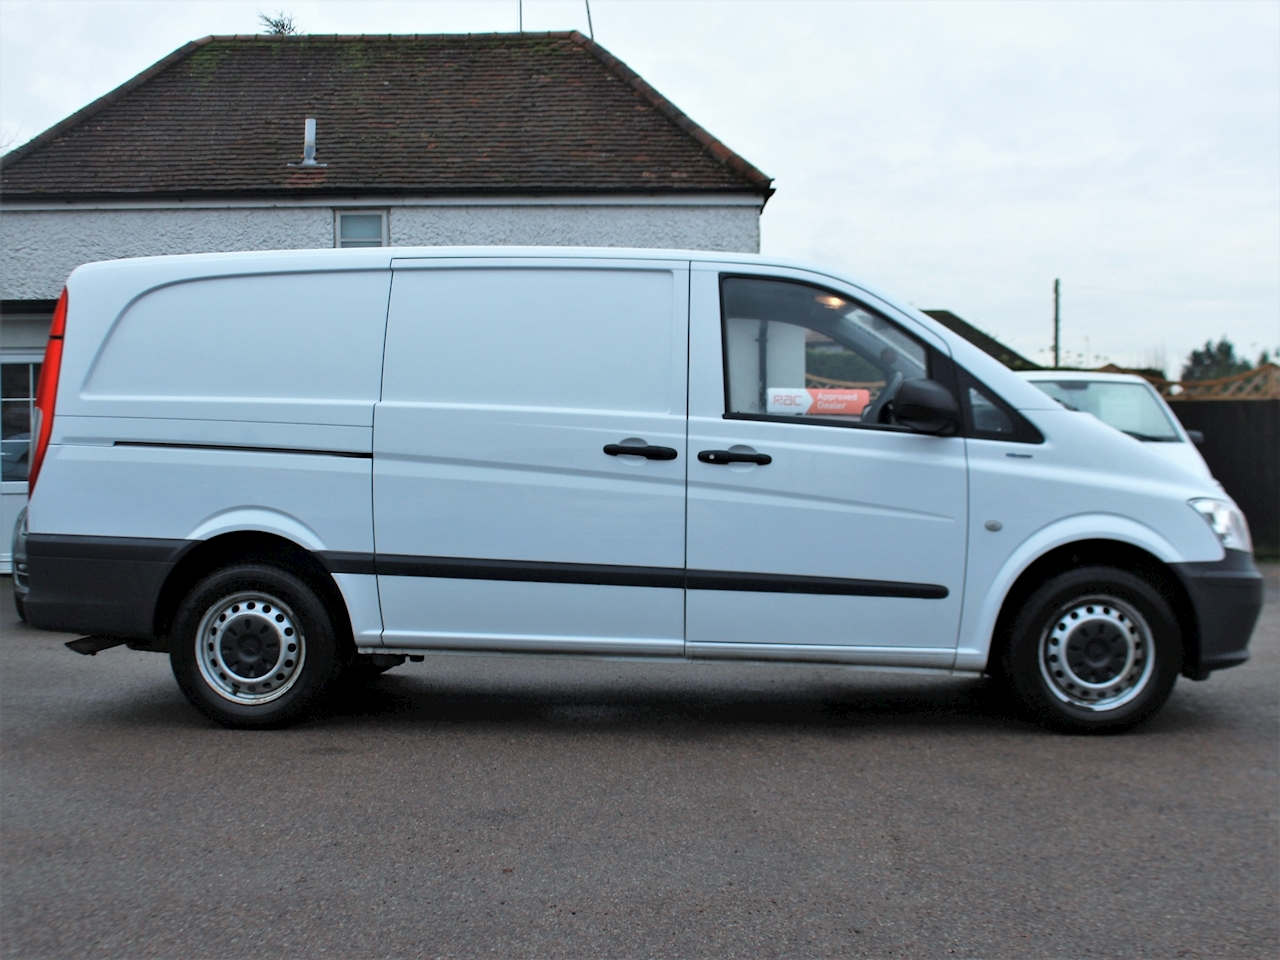 Mercedes-Benz Vito 110 Cdi Blueefficiency - Large 3